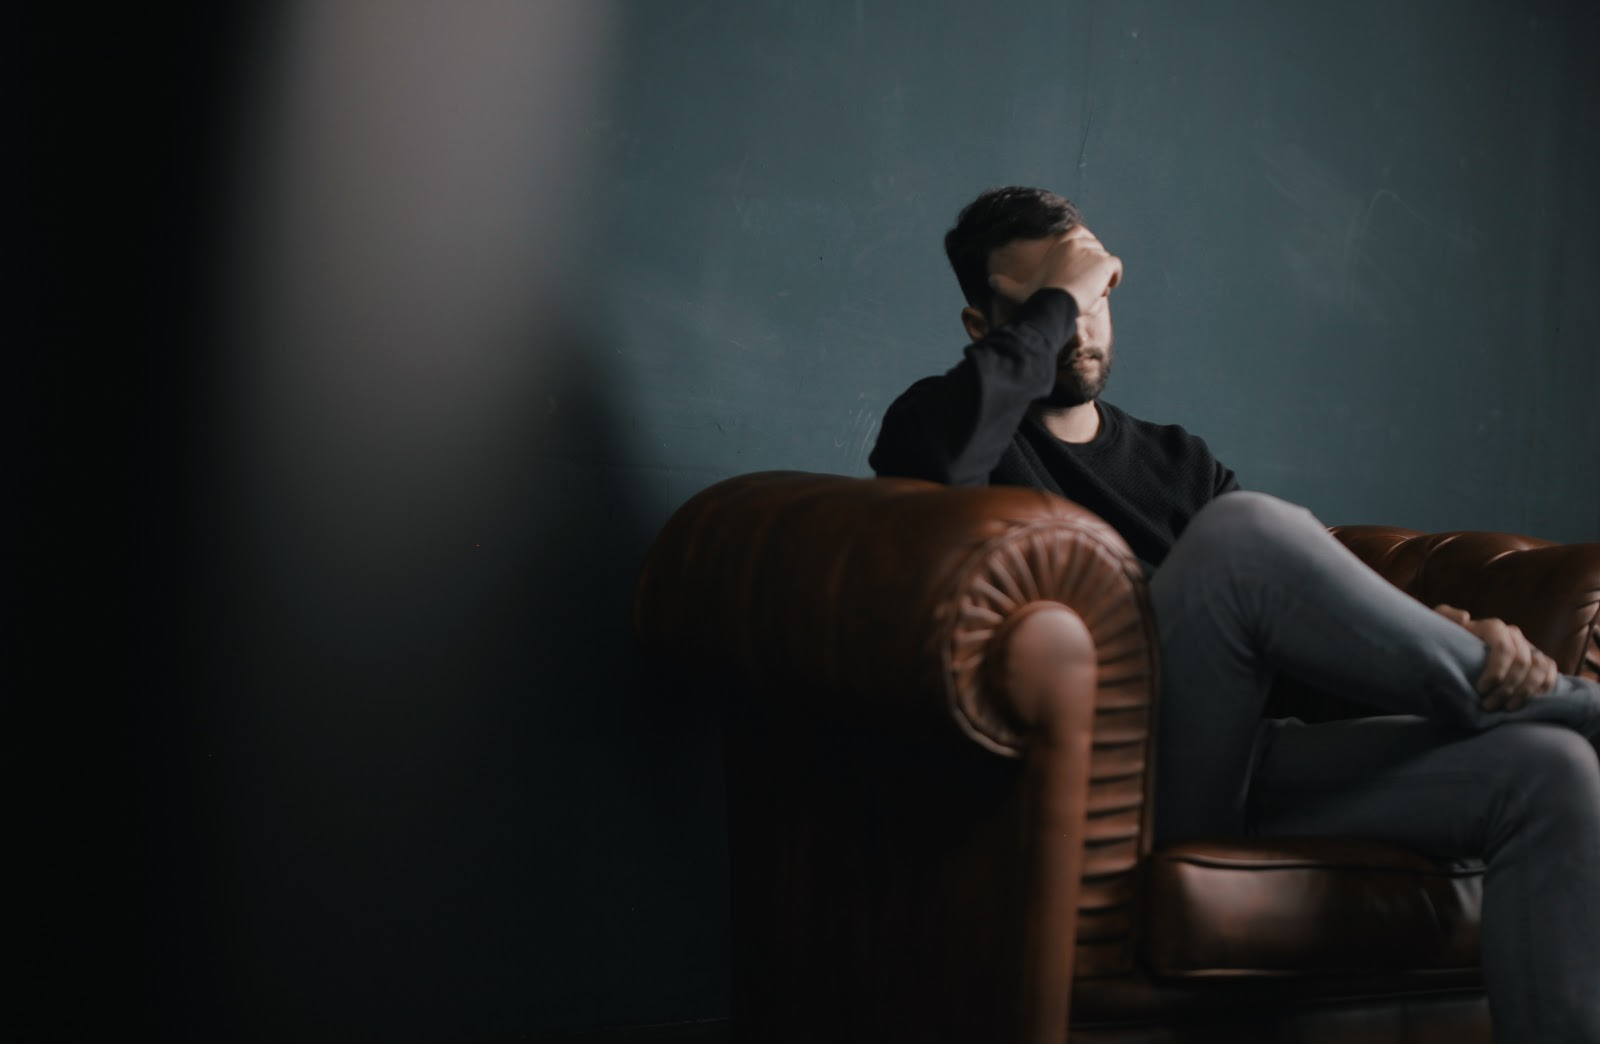 A man, clearly worried, sitting on a couch.